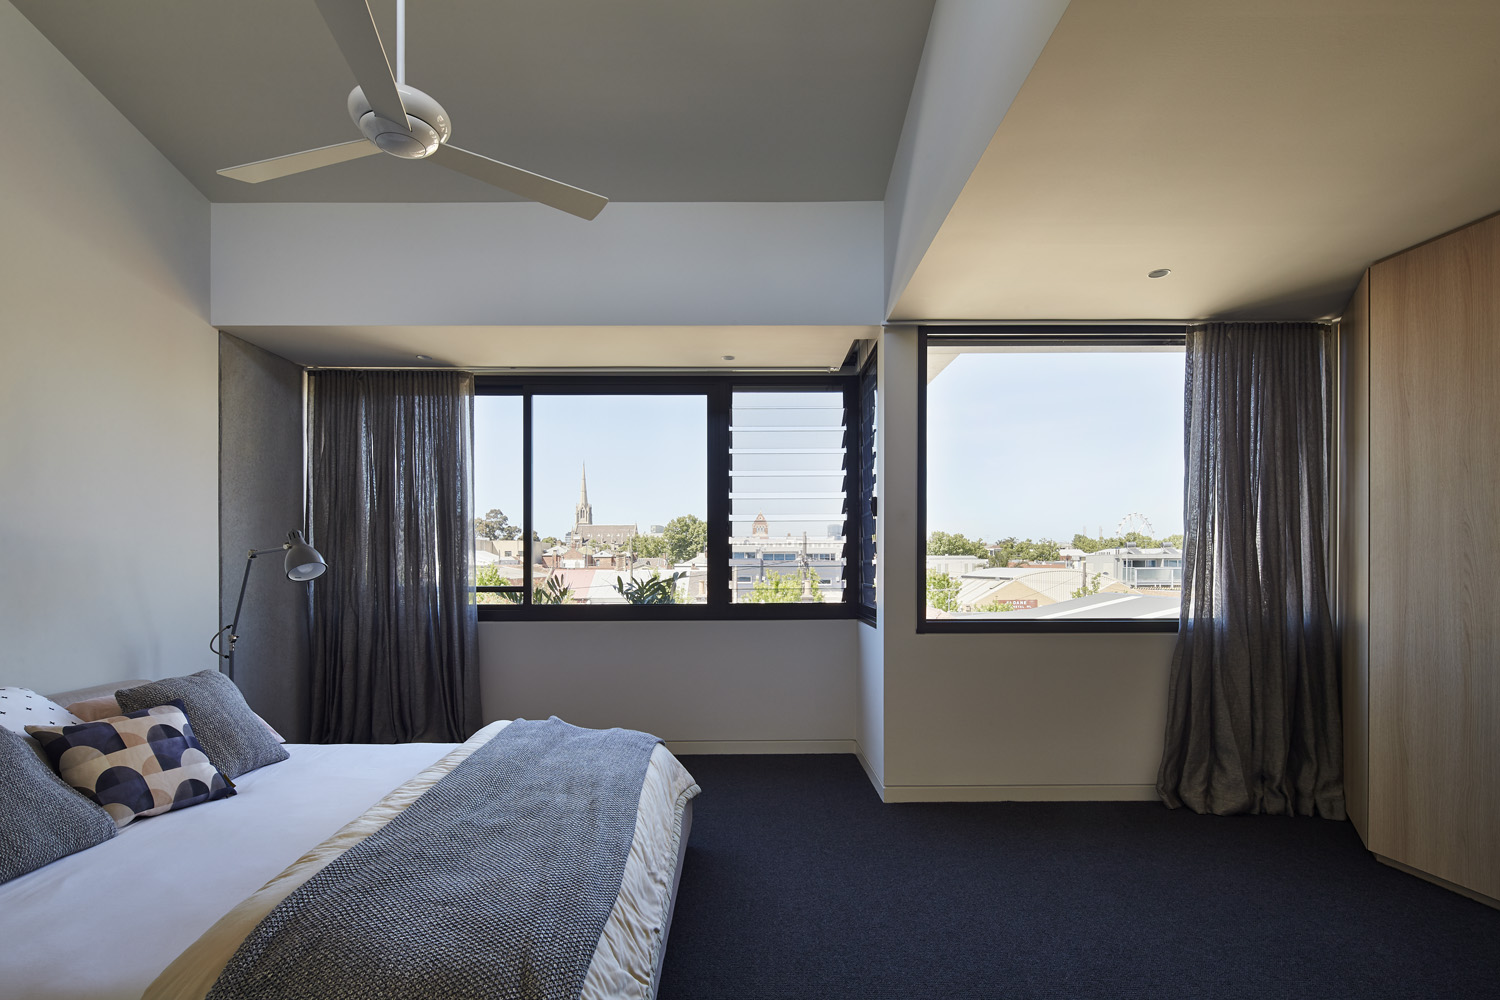 Natural light floods the bedroom, which is ideal when using a darker interior scheme